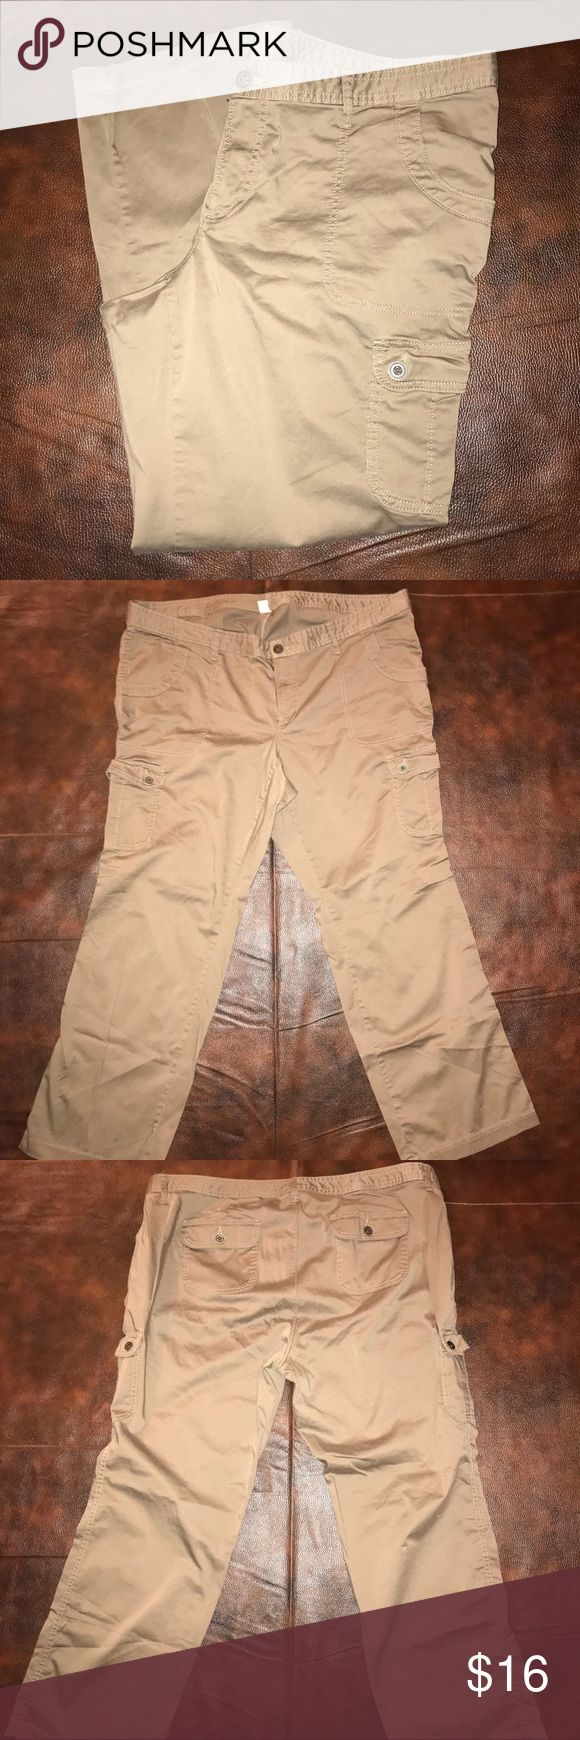 Womens plus size Old Navy Yam cargo pants sz 20 Old Navy tan Cargo womens plus size pants, gently used condition Old Navy Pants Boot Cut & Flare